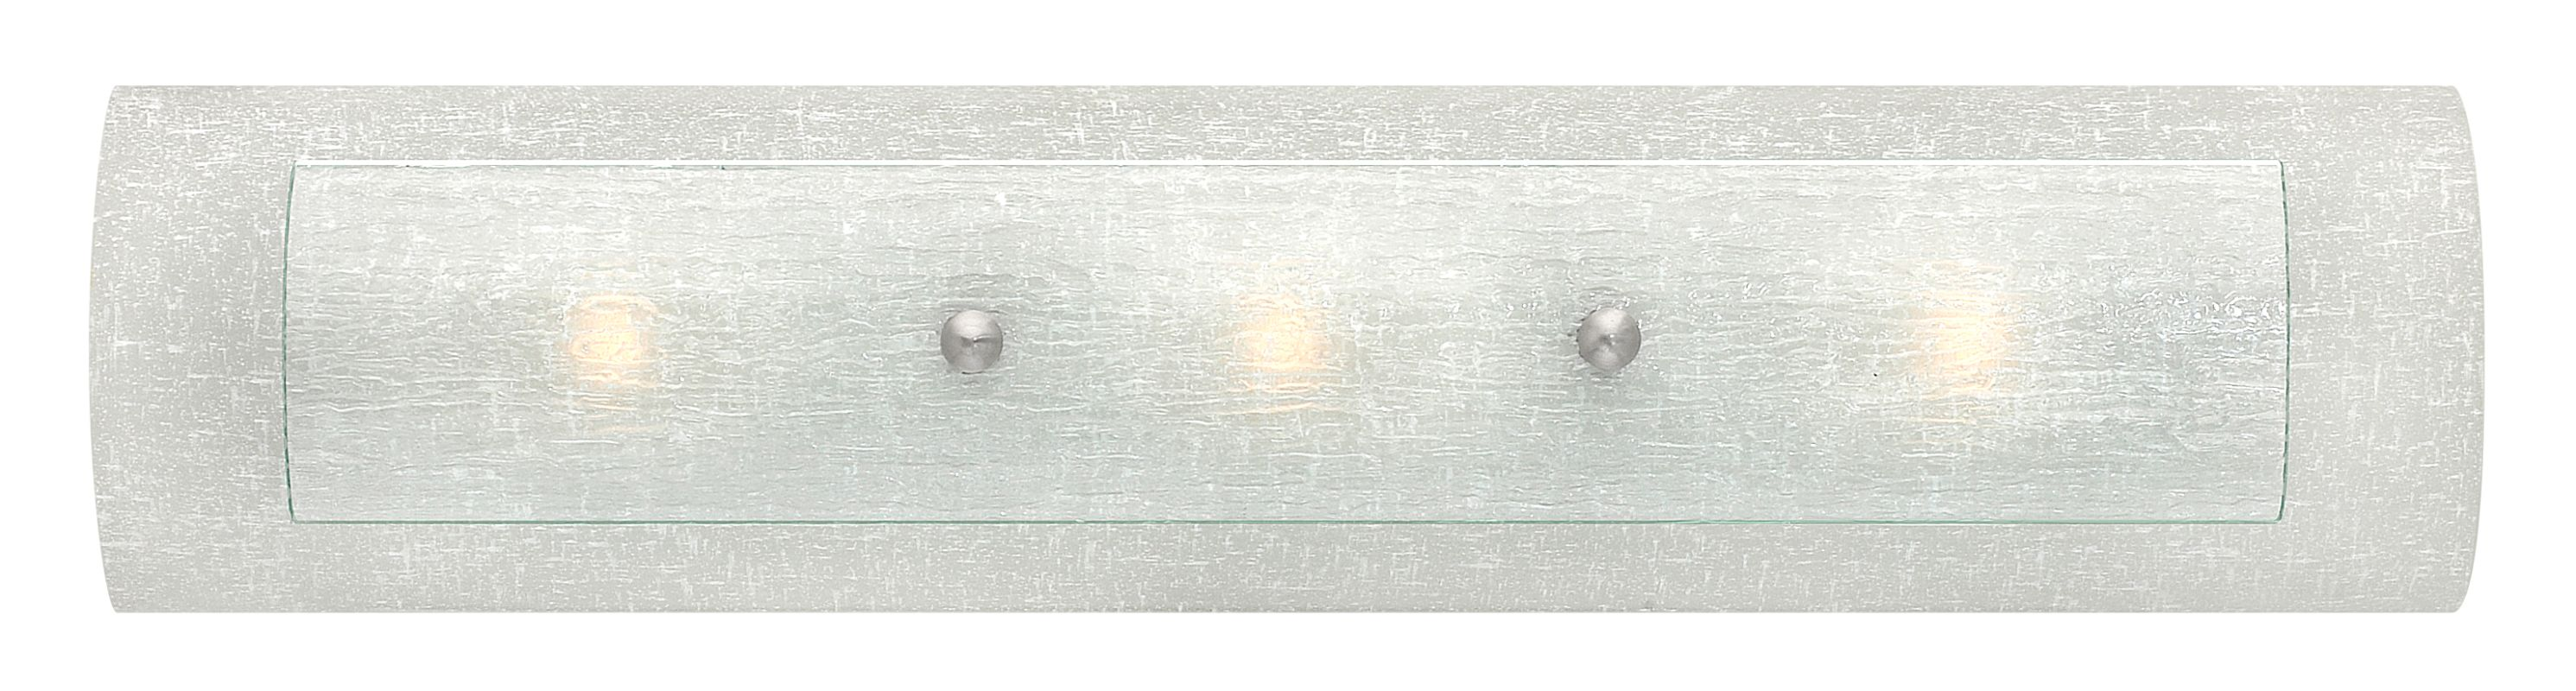 Hinkley 5613BN Brushed Nickel Contemporary Duet Bathroom Light Sale $279.00 ITEM: bci1883726 ID#:5613BN UPC: 640665561302 :